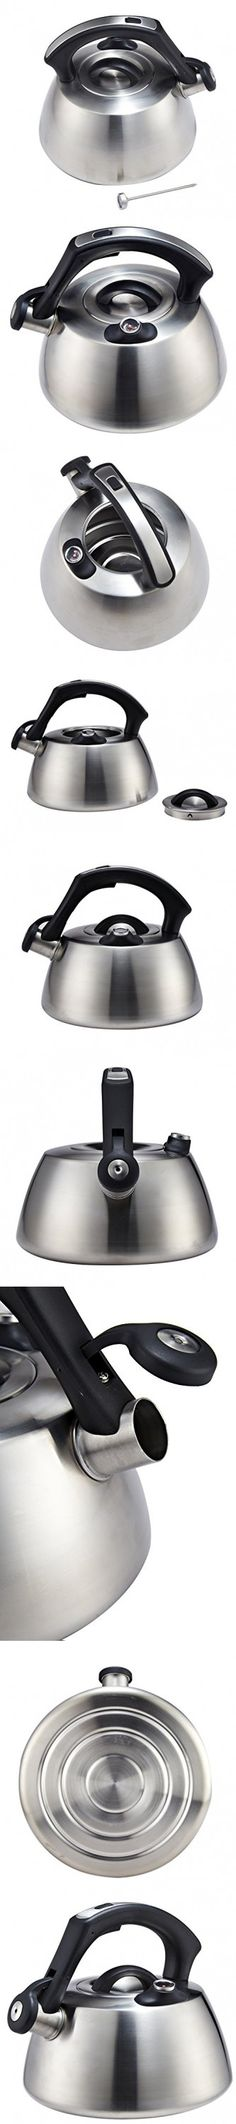 Whistling Tea Kettle 8 Cups to Boil Water on Stove Top in Quality Modern Brushed Stainless Steel